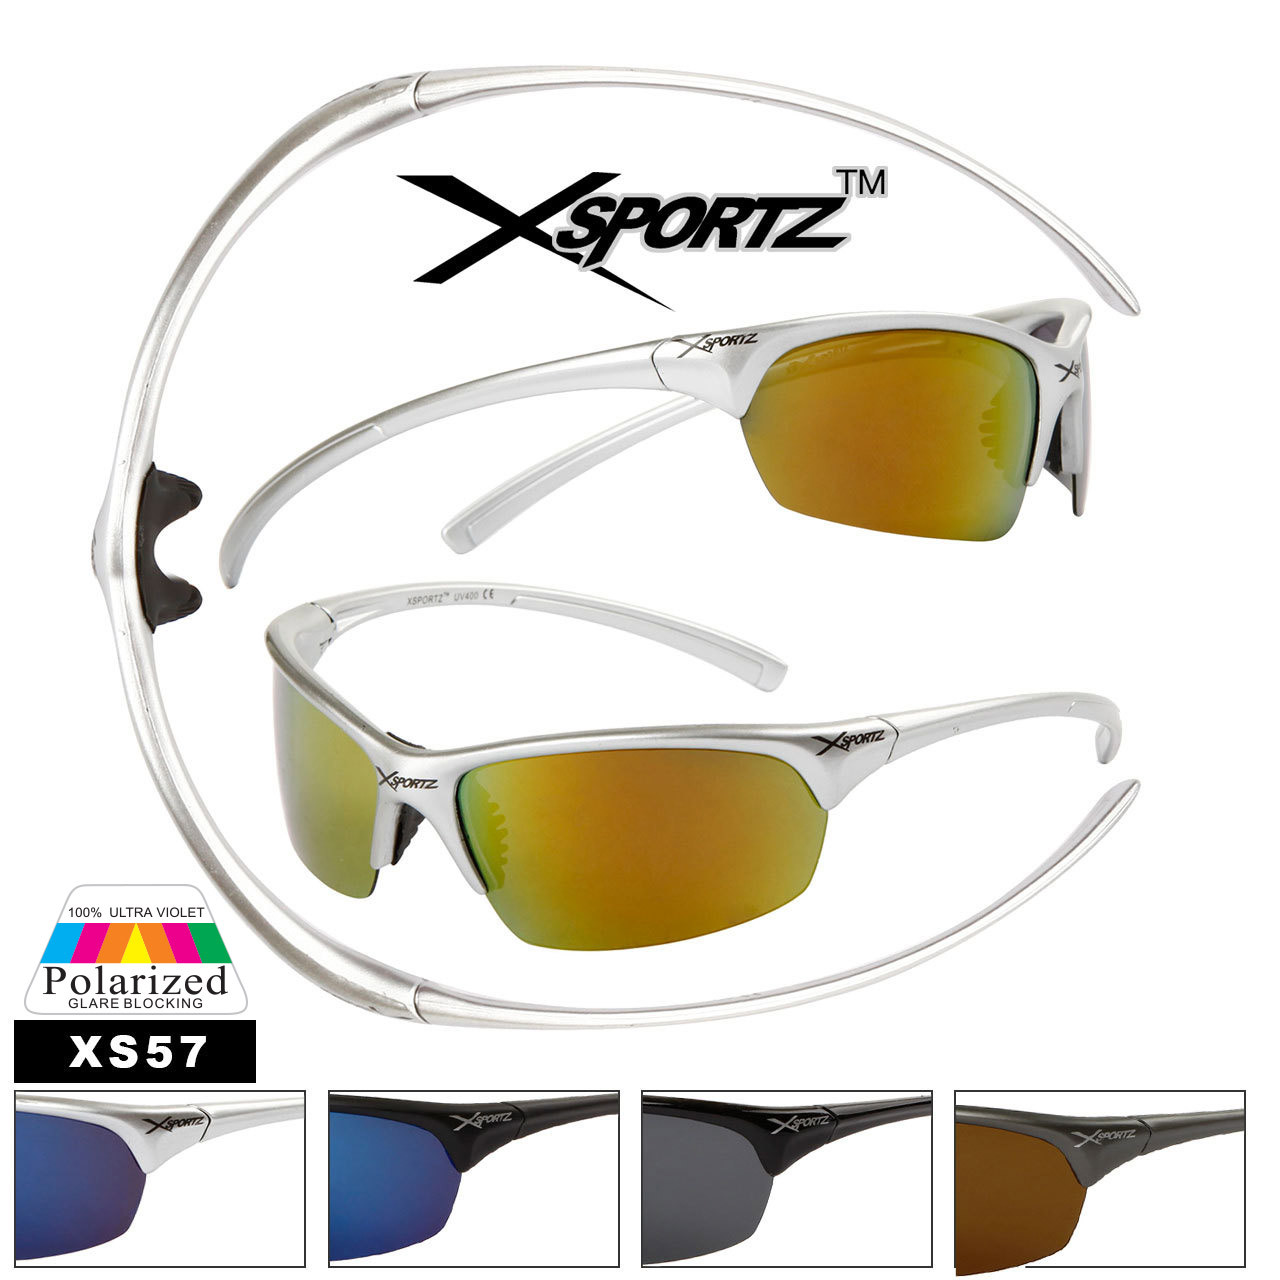 Xsportz™ Polarized Sunglasses by the Dozen - Style XS57